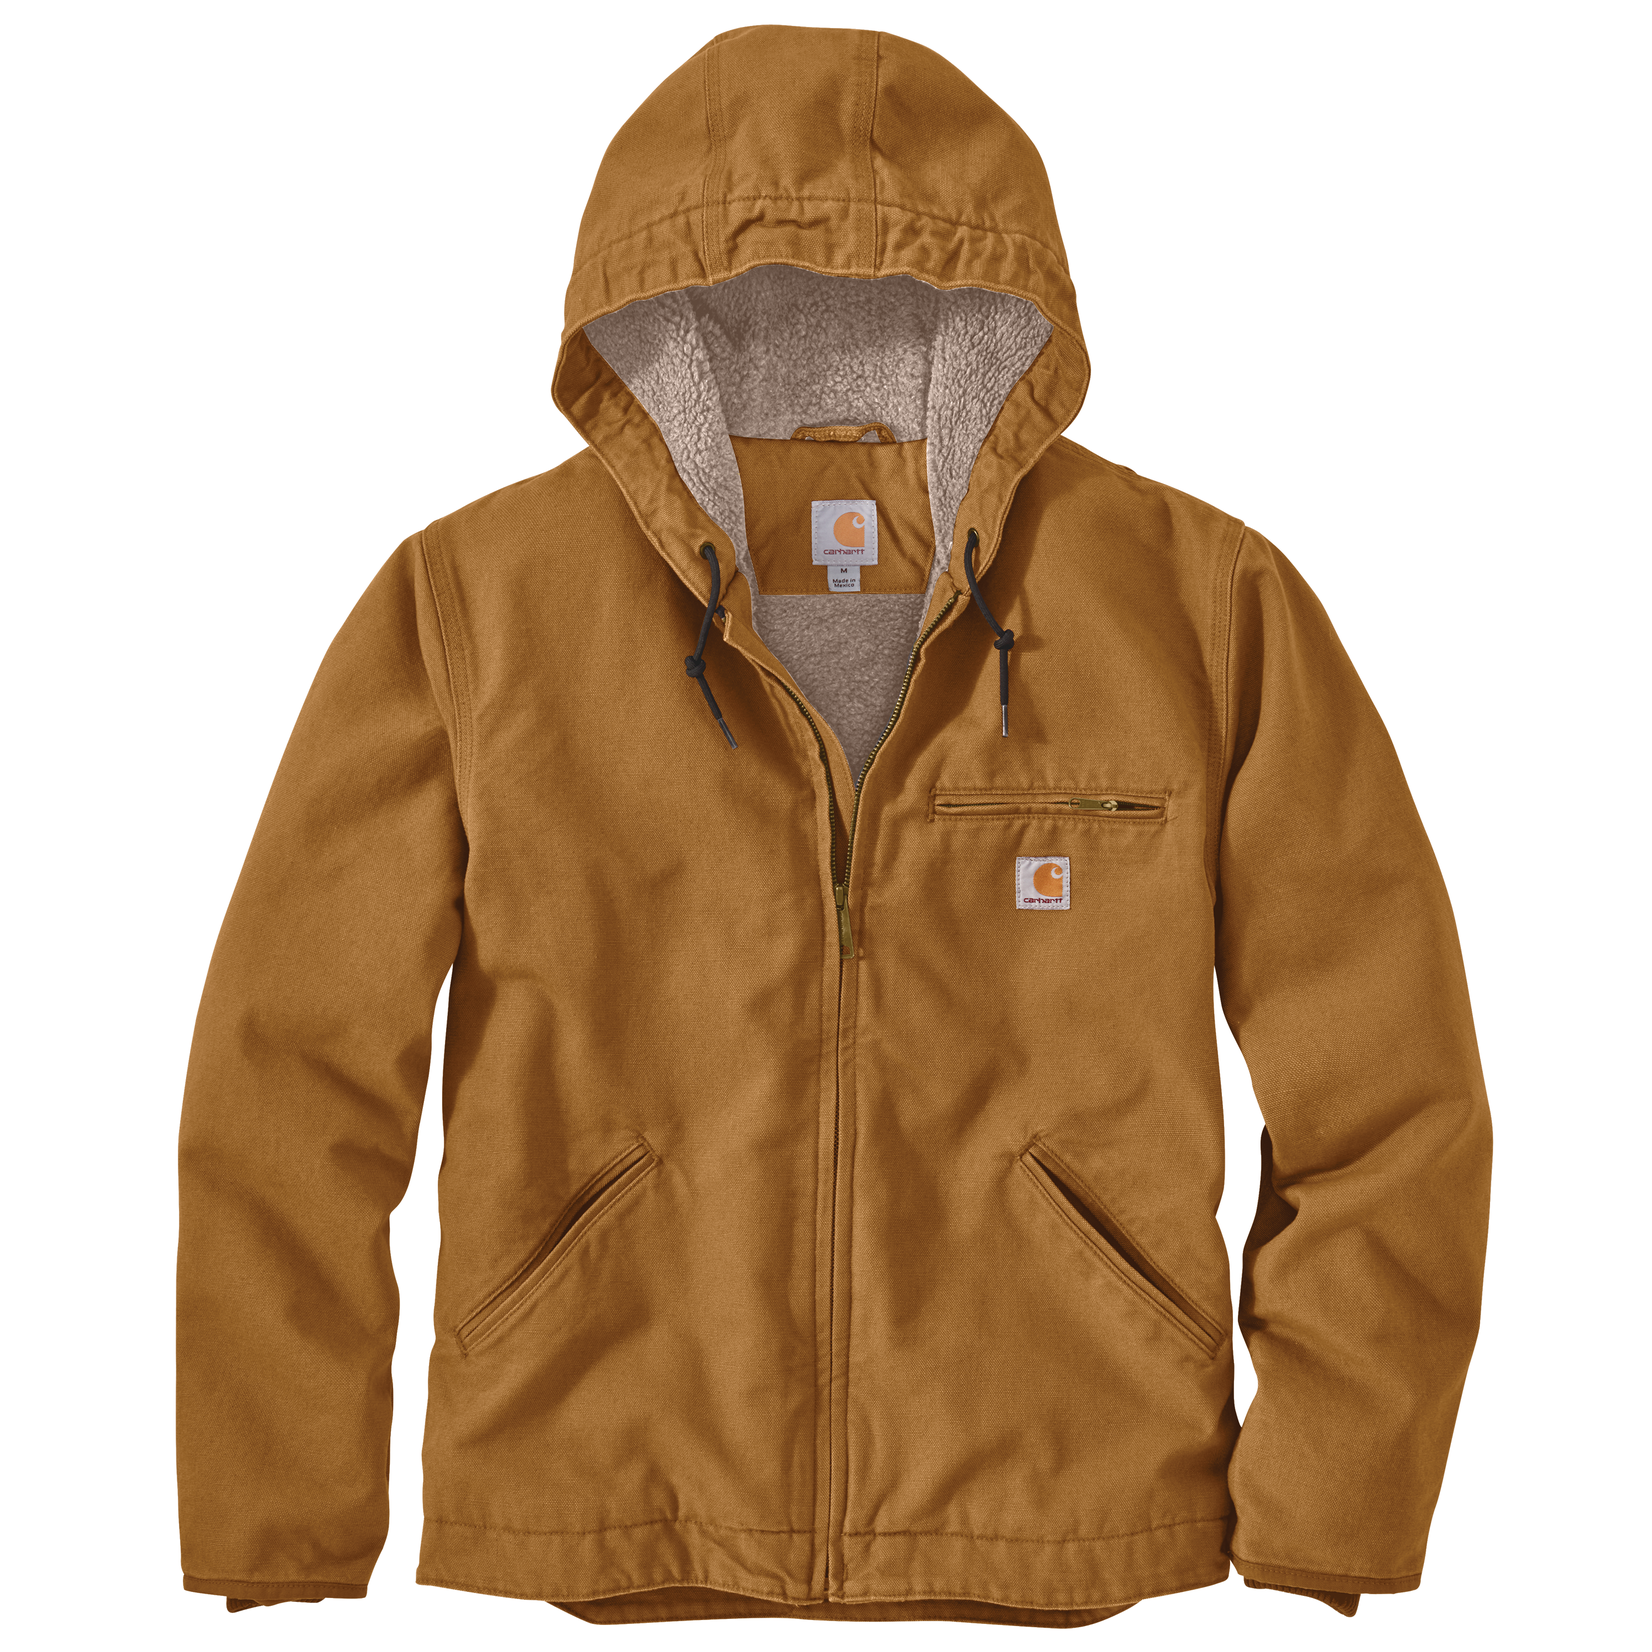 Carhartt Carhartt 104392 Relaxed Fit Washed Duck Sherpa Lined Jacket - BRN Carhartt Brown